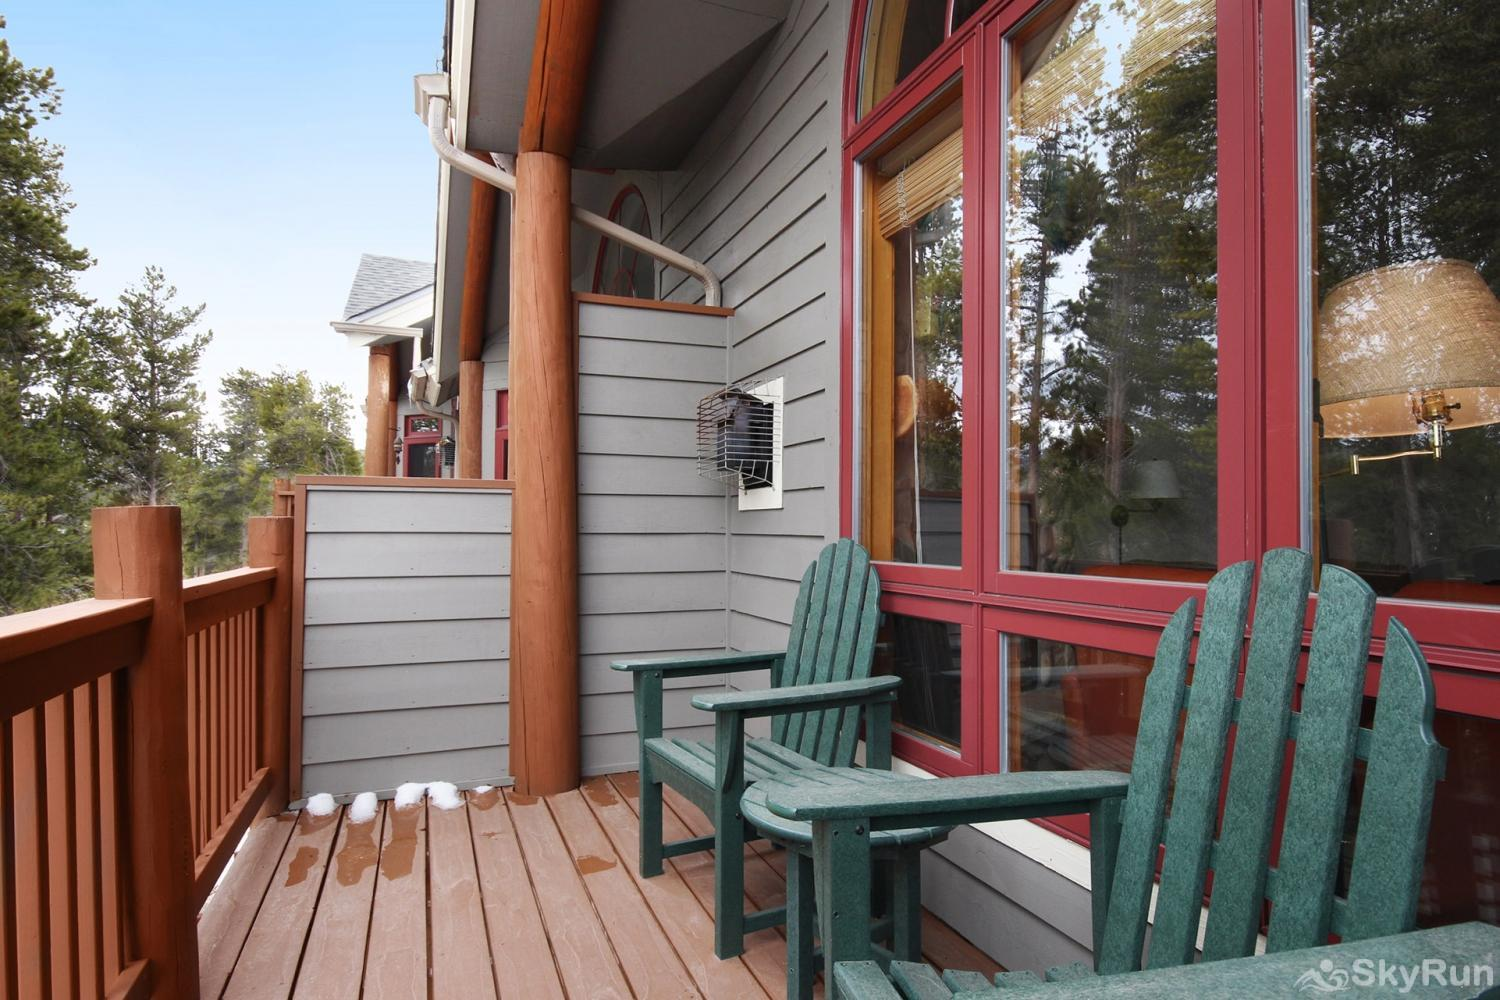 Elk Ridge 406 Breathe in that fresh mountain air while enjoying the serenity of 3 private decks